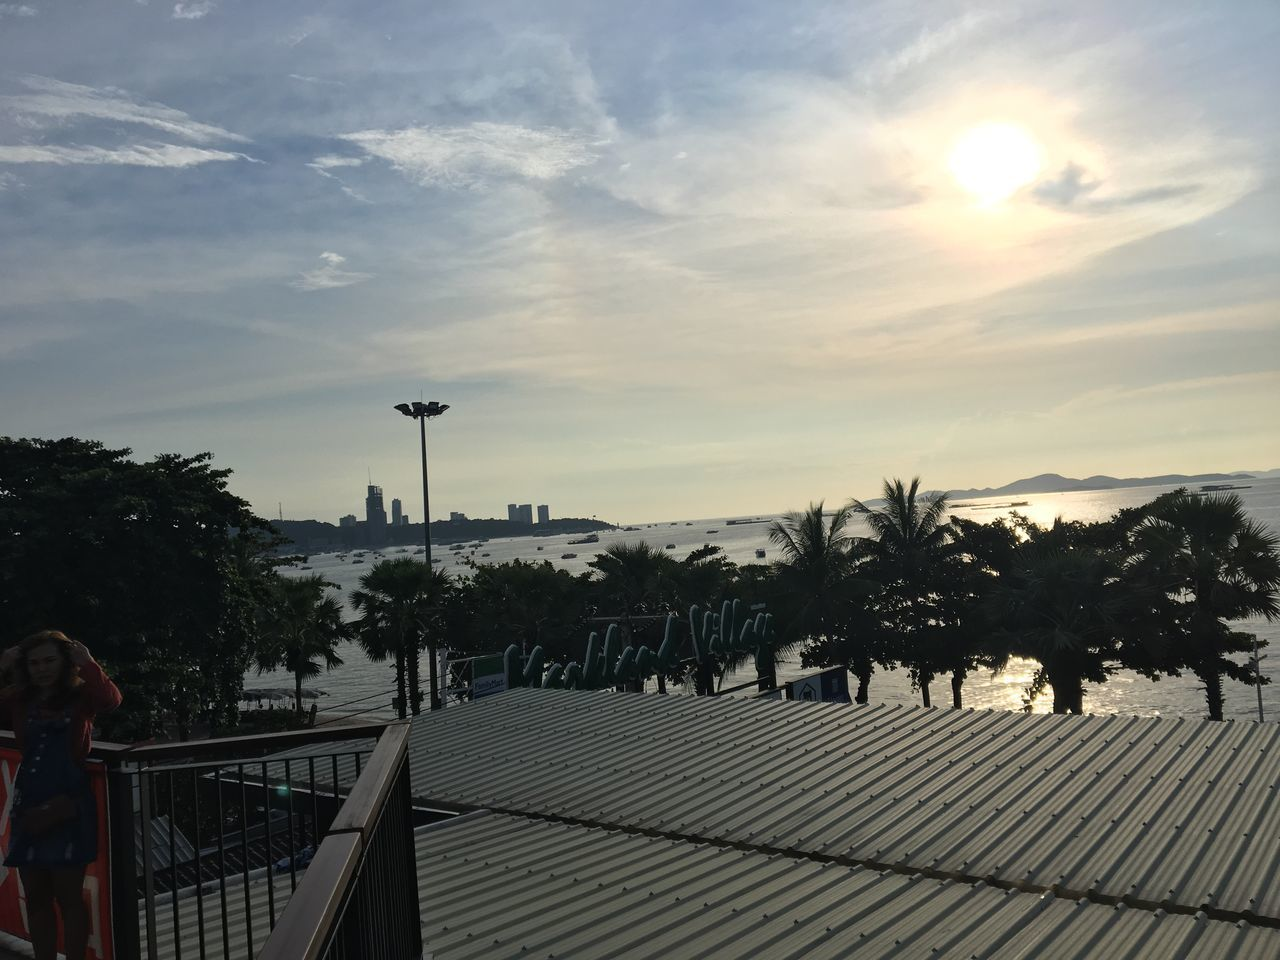 Rooftop at Pattaya Thailand ,also there is the Teddy Island nearby. Rooftop Scenery Scenery Rooftop View  Above View View From Above View Rooftop Pattaya Thailand Thailand Pattaya Teddy Bear